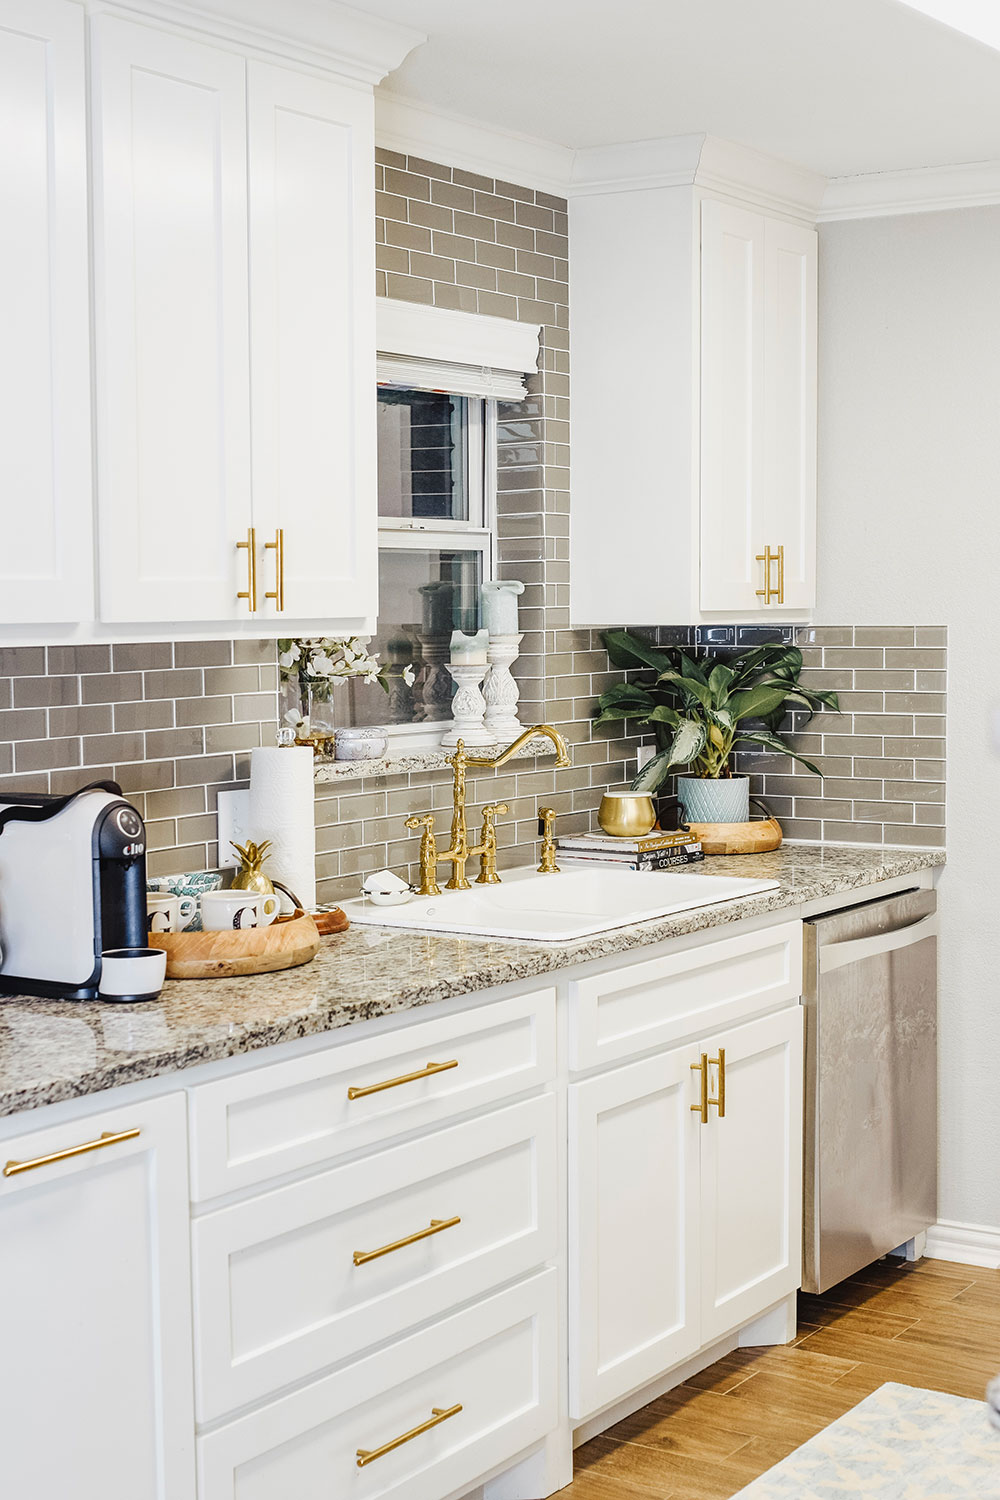 Our Kitchen Sink Woes + Our Small Kitchen Reveal   Vandi Fair